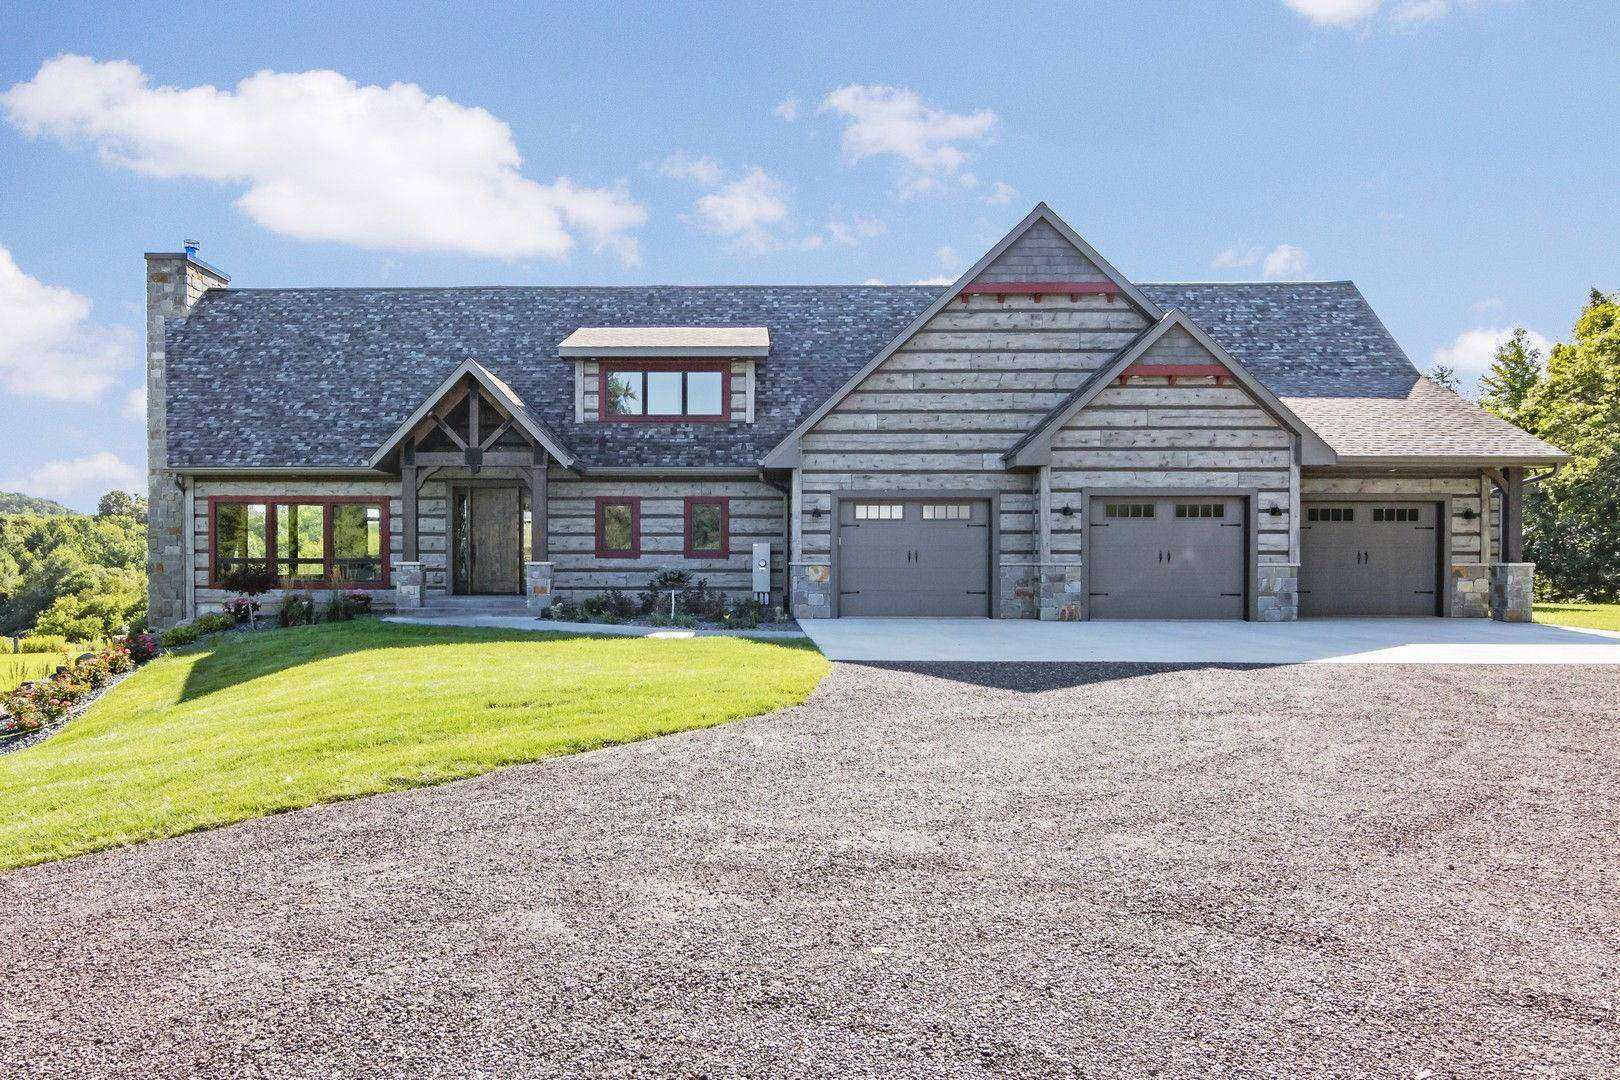 Featured Home: Eau Claire, Wisconsin Show Log Home - EverLog Siding